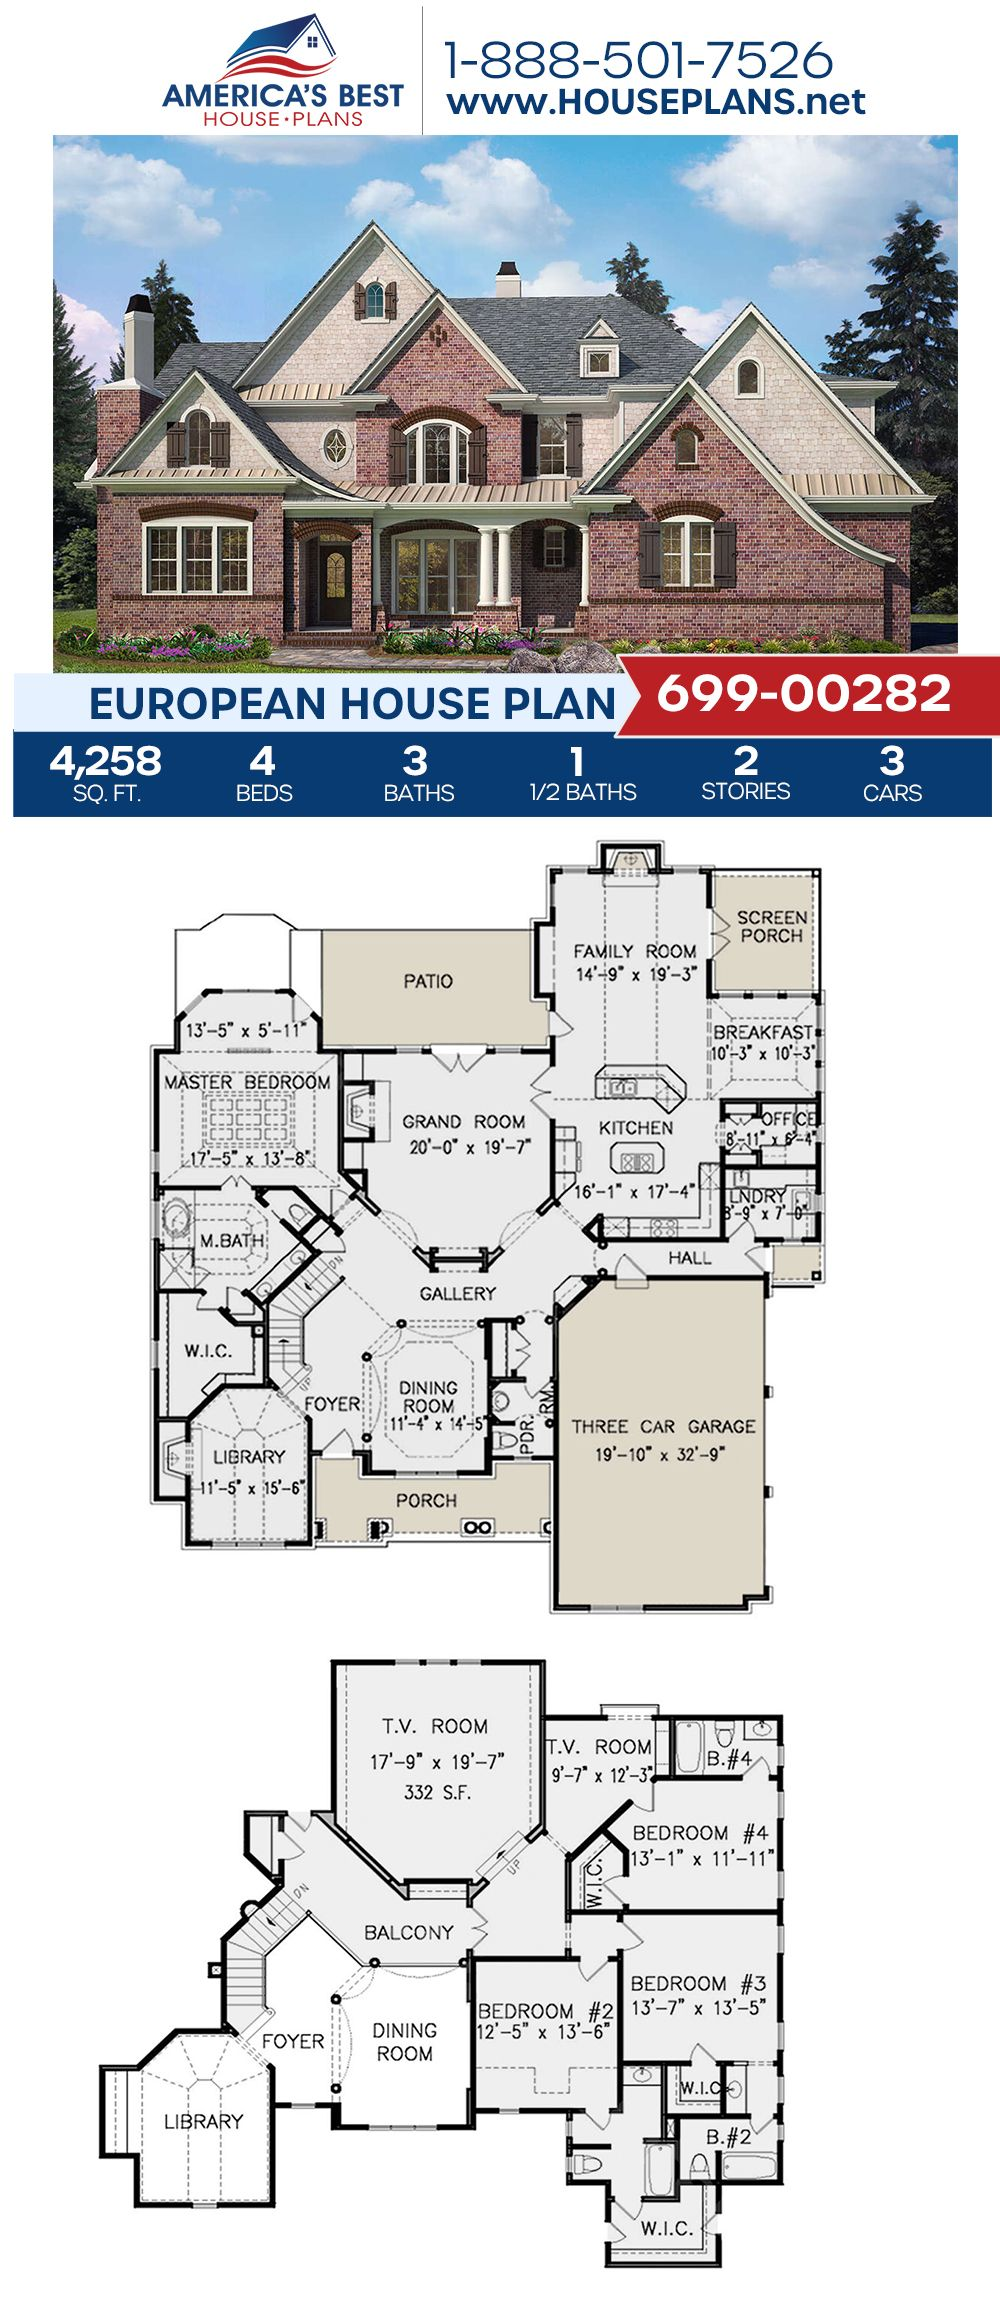 House Plan 699 00282 European Plan 4 258 Square Feet 4 Bedrooms 3 5 Bathrooms In 2020 Porch House Plans European House Affordable House Plans